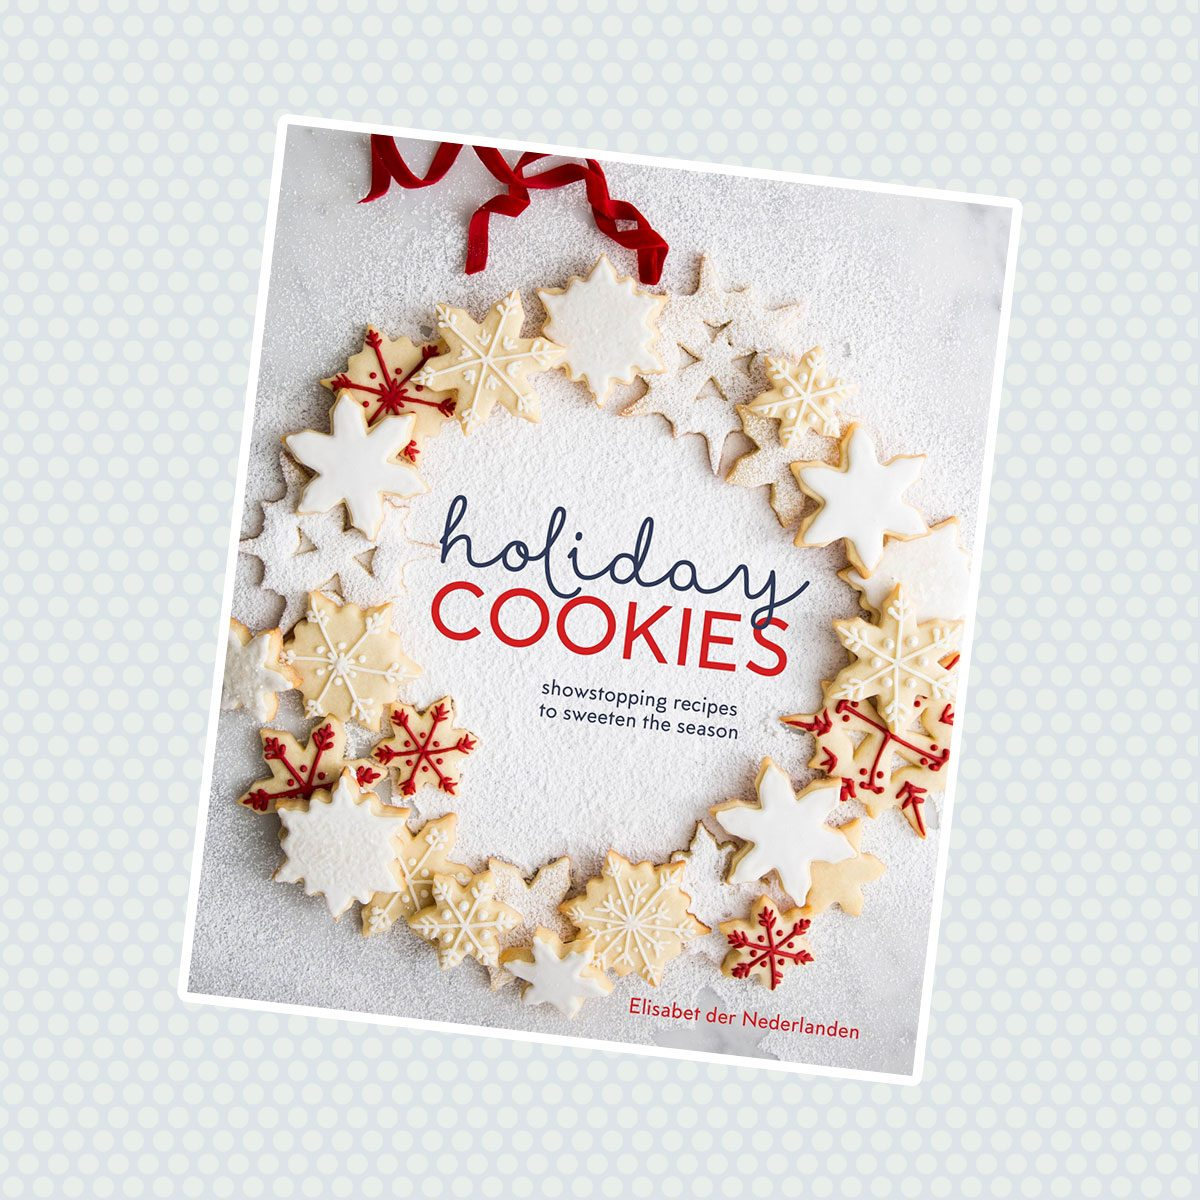 Holiday Cookies: Showstopping Recipes to Sweeten the Season